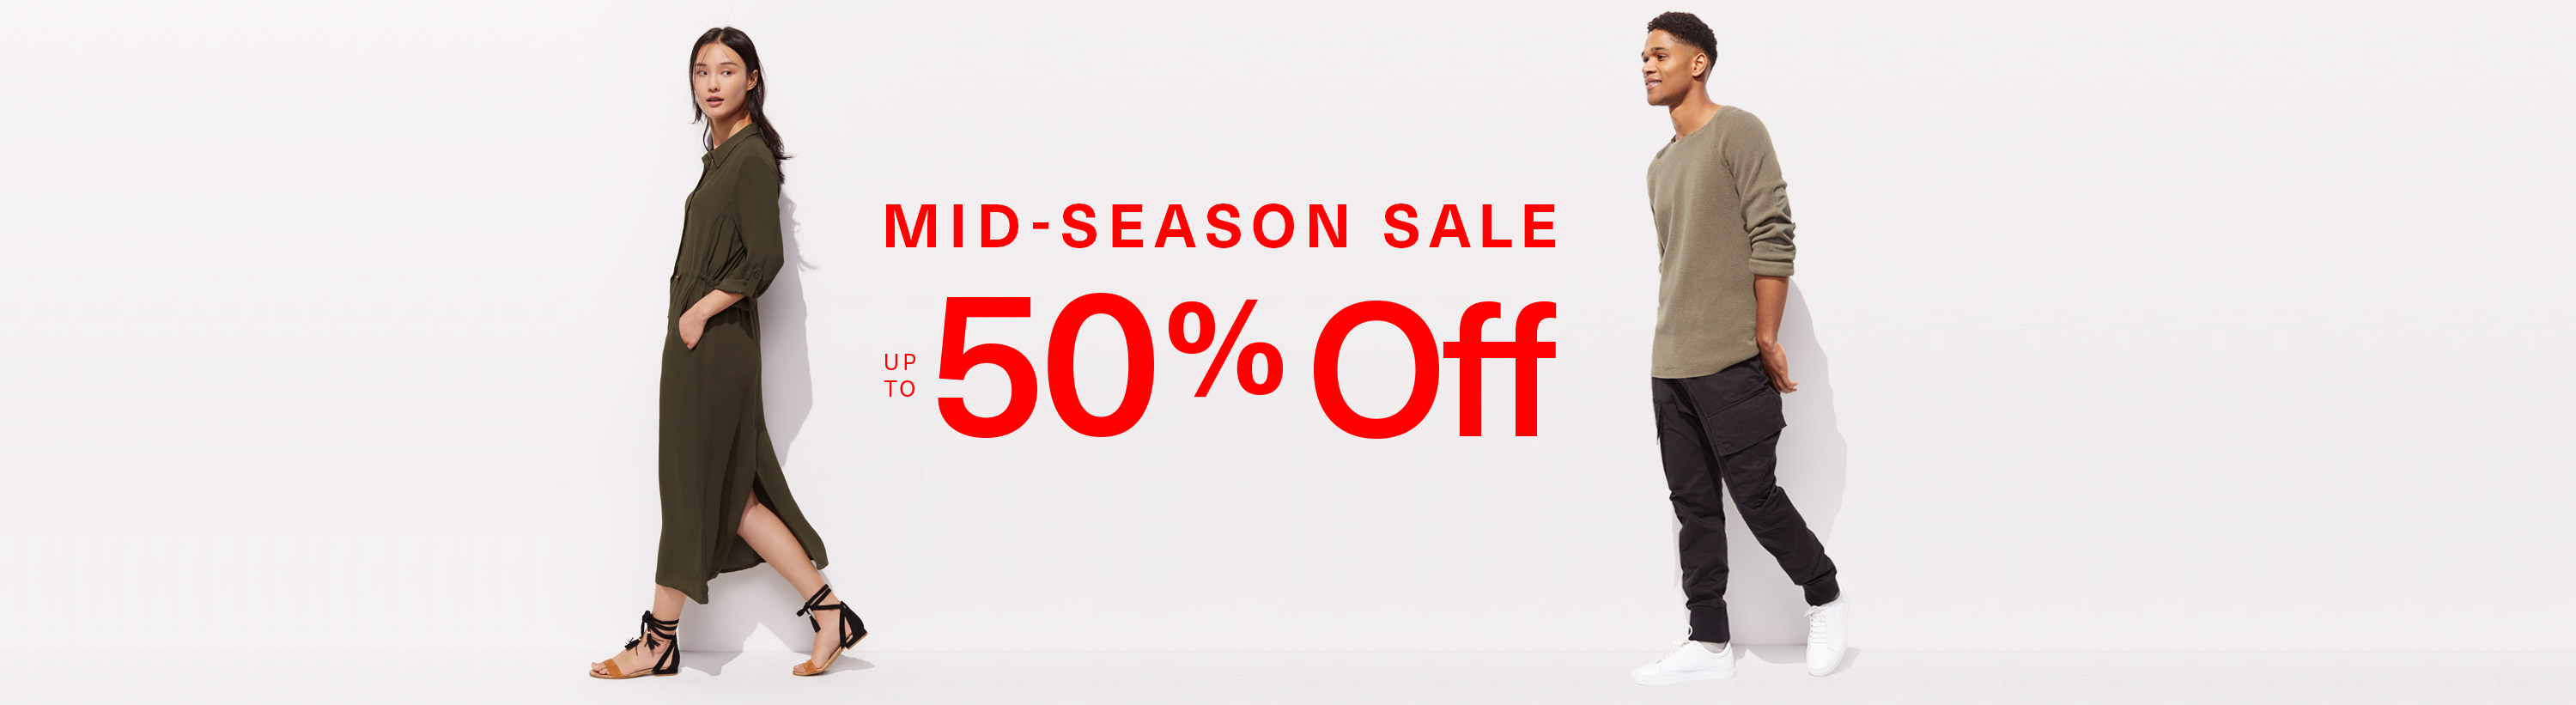 Mid-Season Sale - Up to 50% Off